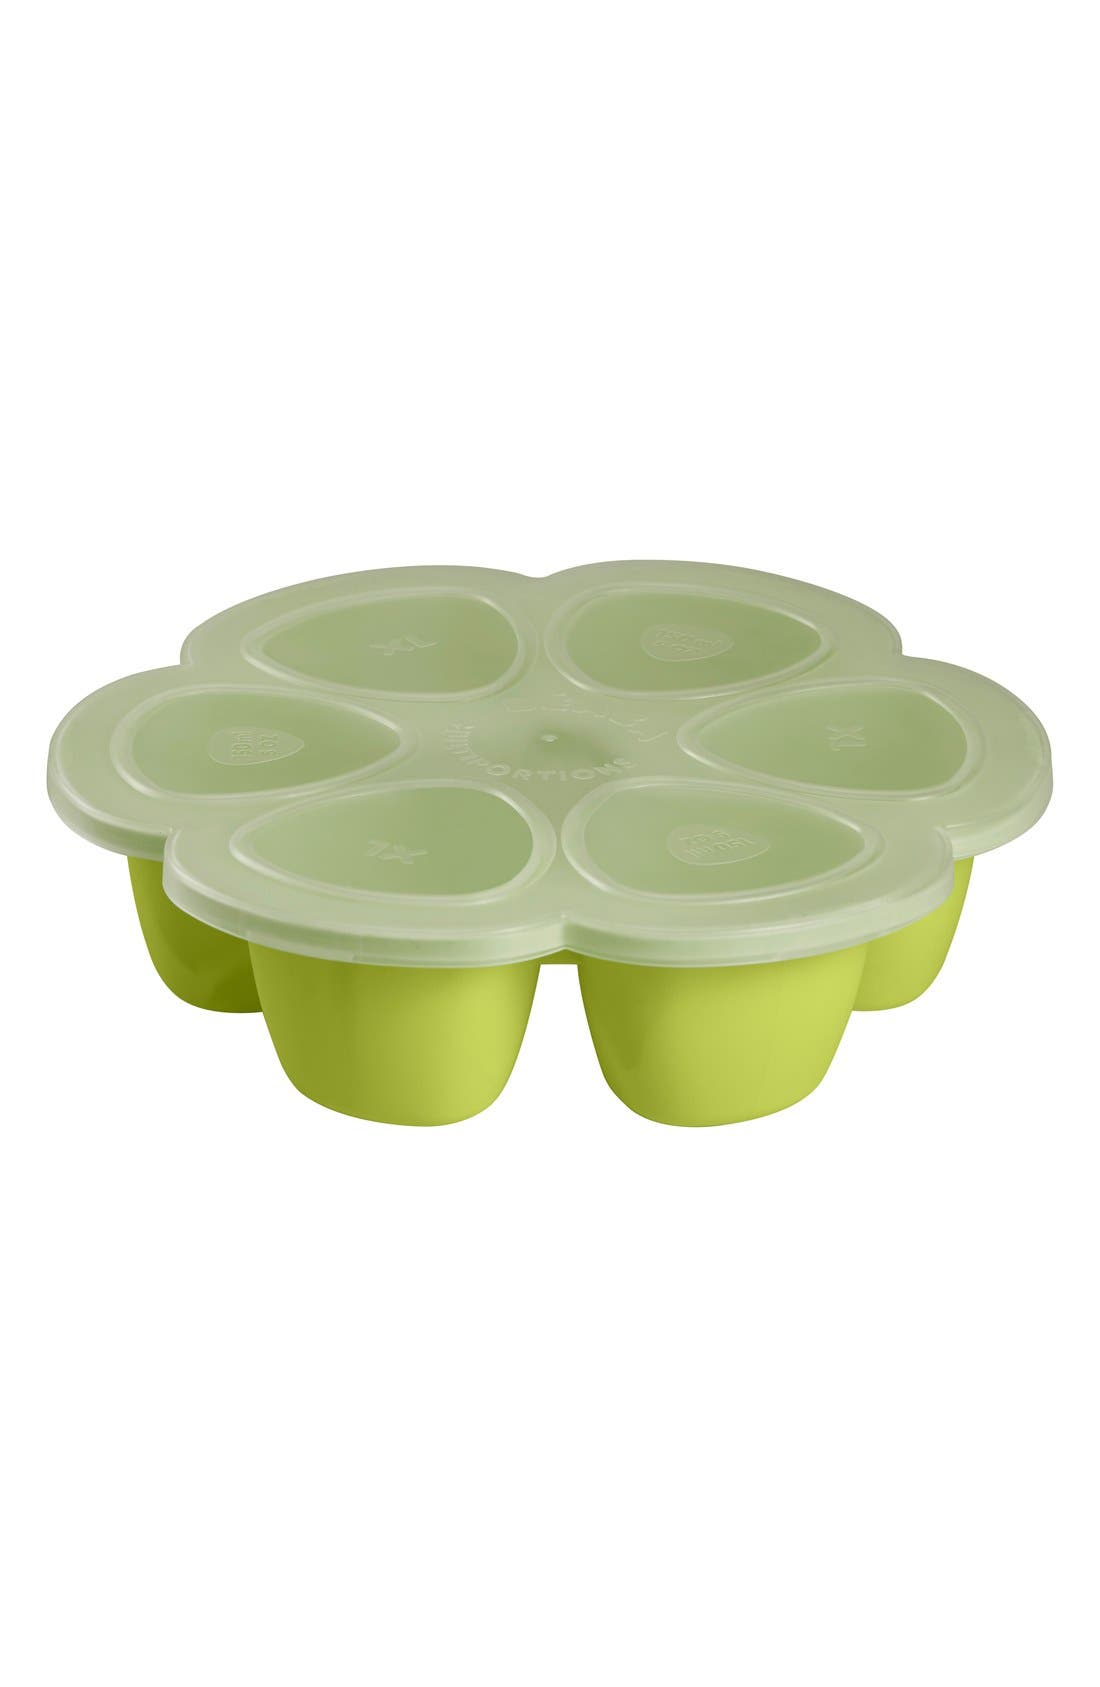 'Multiportions' 3 oz. Food Cup Tray,                             Alternate thumbnail 3, color,                             320